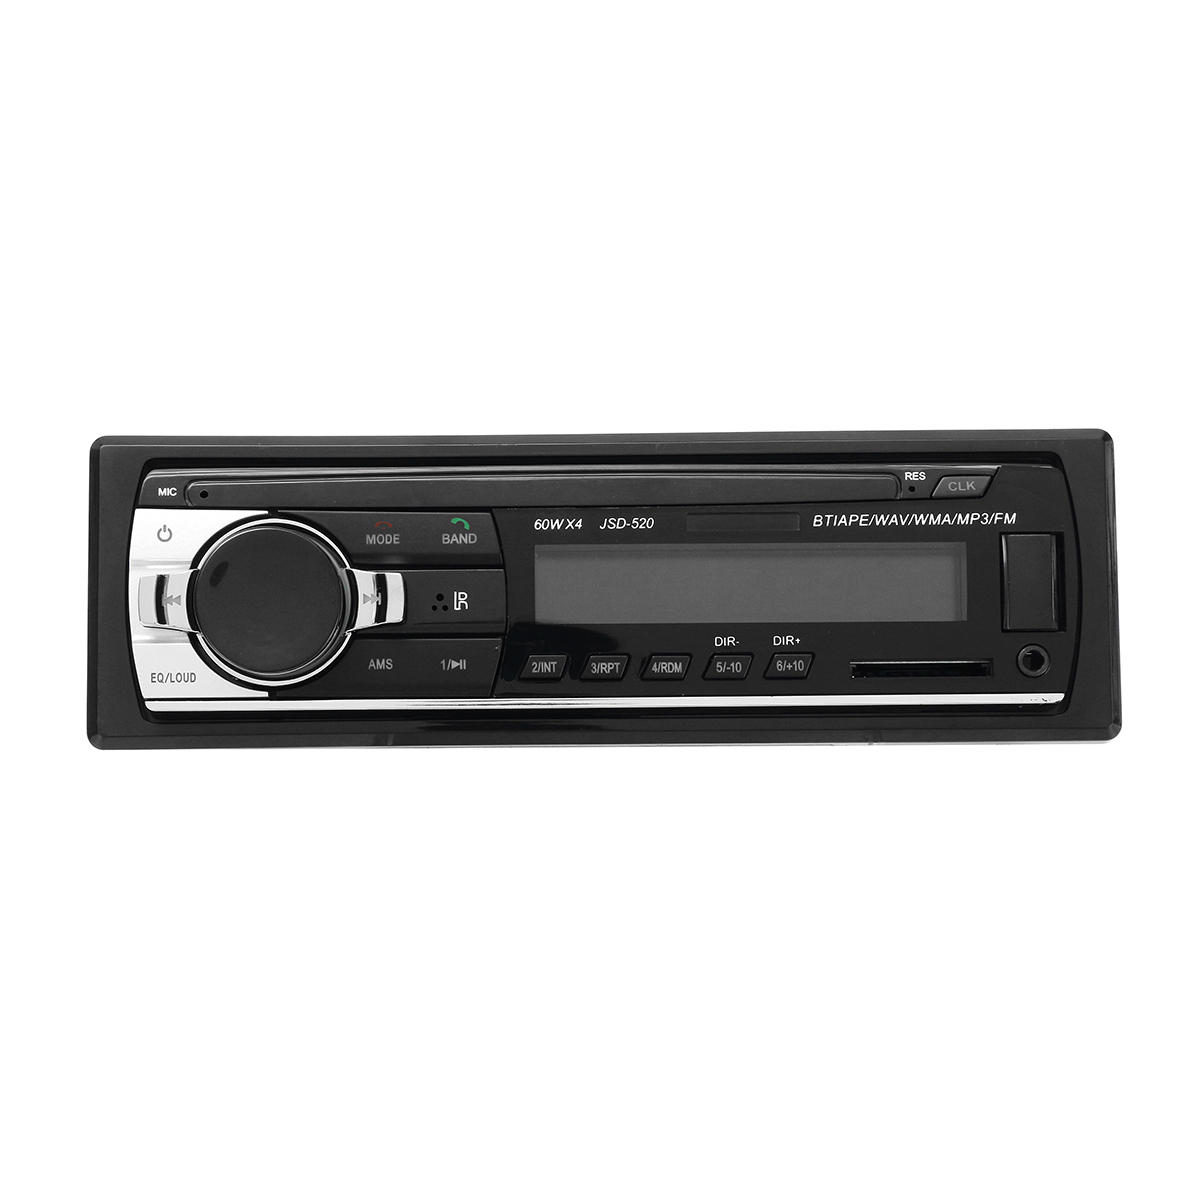 JSD520 Auto Bluetooth FM CD DVD-radio Stereo Hands-free MP3-speler Buit-in Microfoon